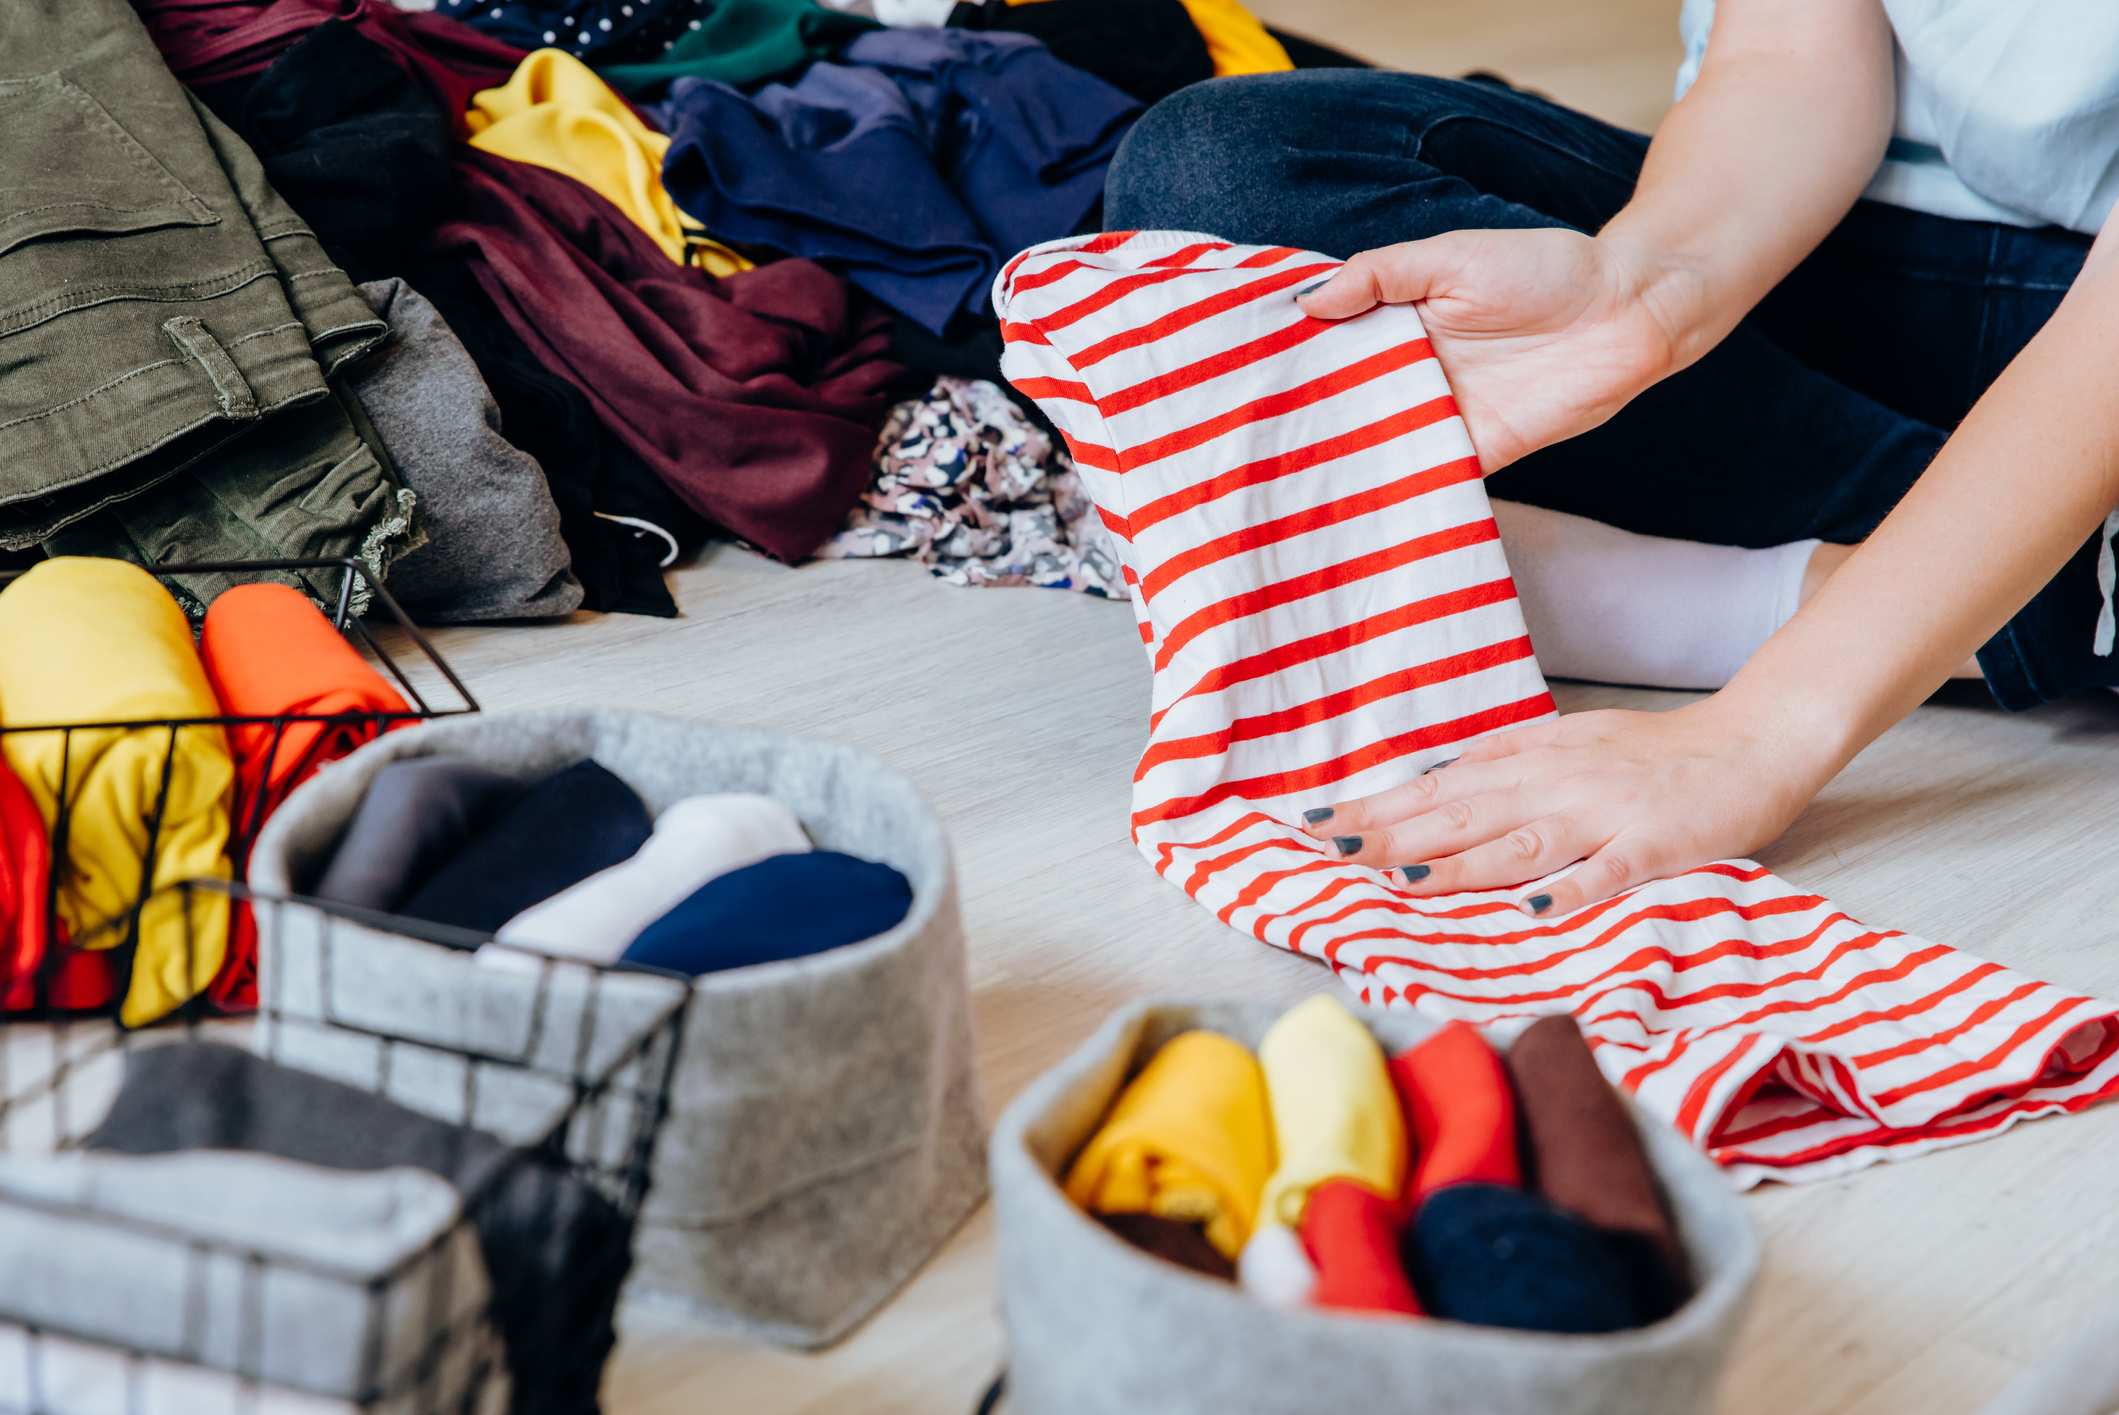 Woman folding laundry and clothes on the floor in bedroom, organizing laundry in boxes and baskets. Concept of minimalist lifestyle and japanese t shirt folding system. Konmari method